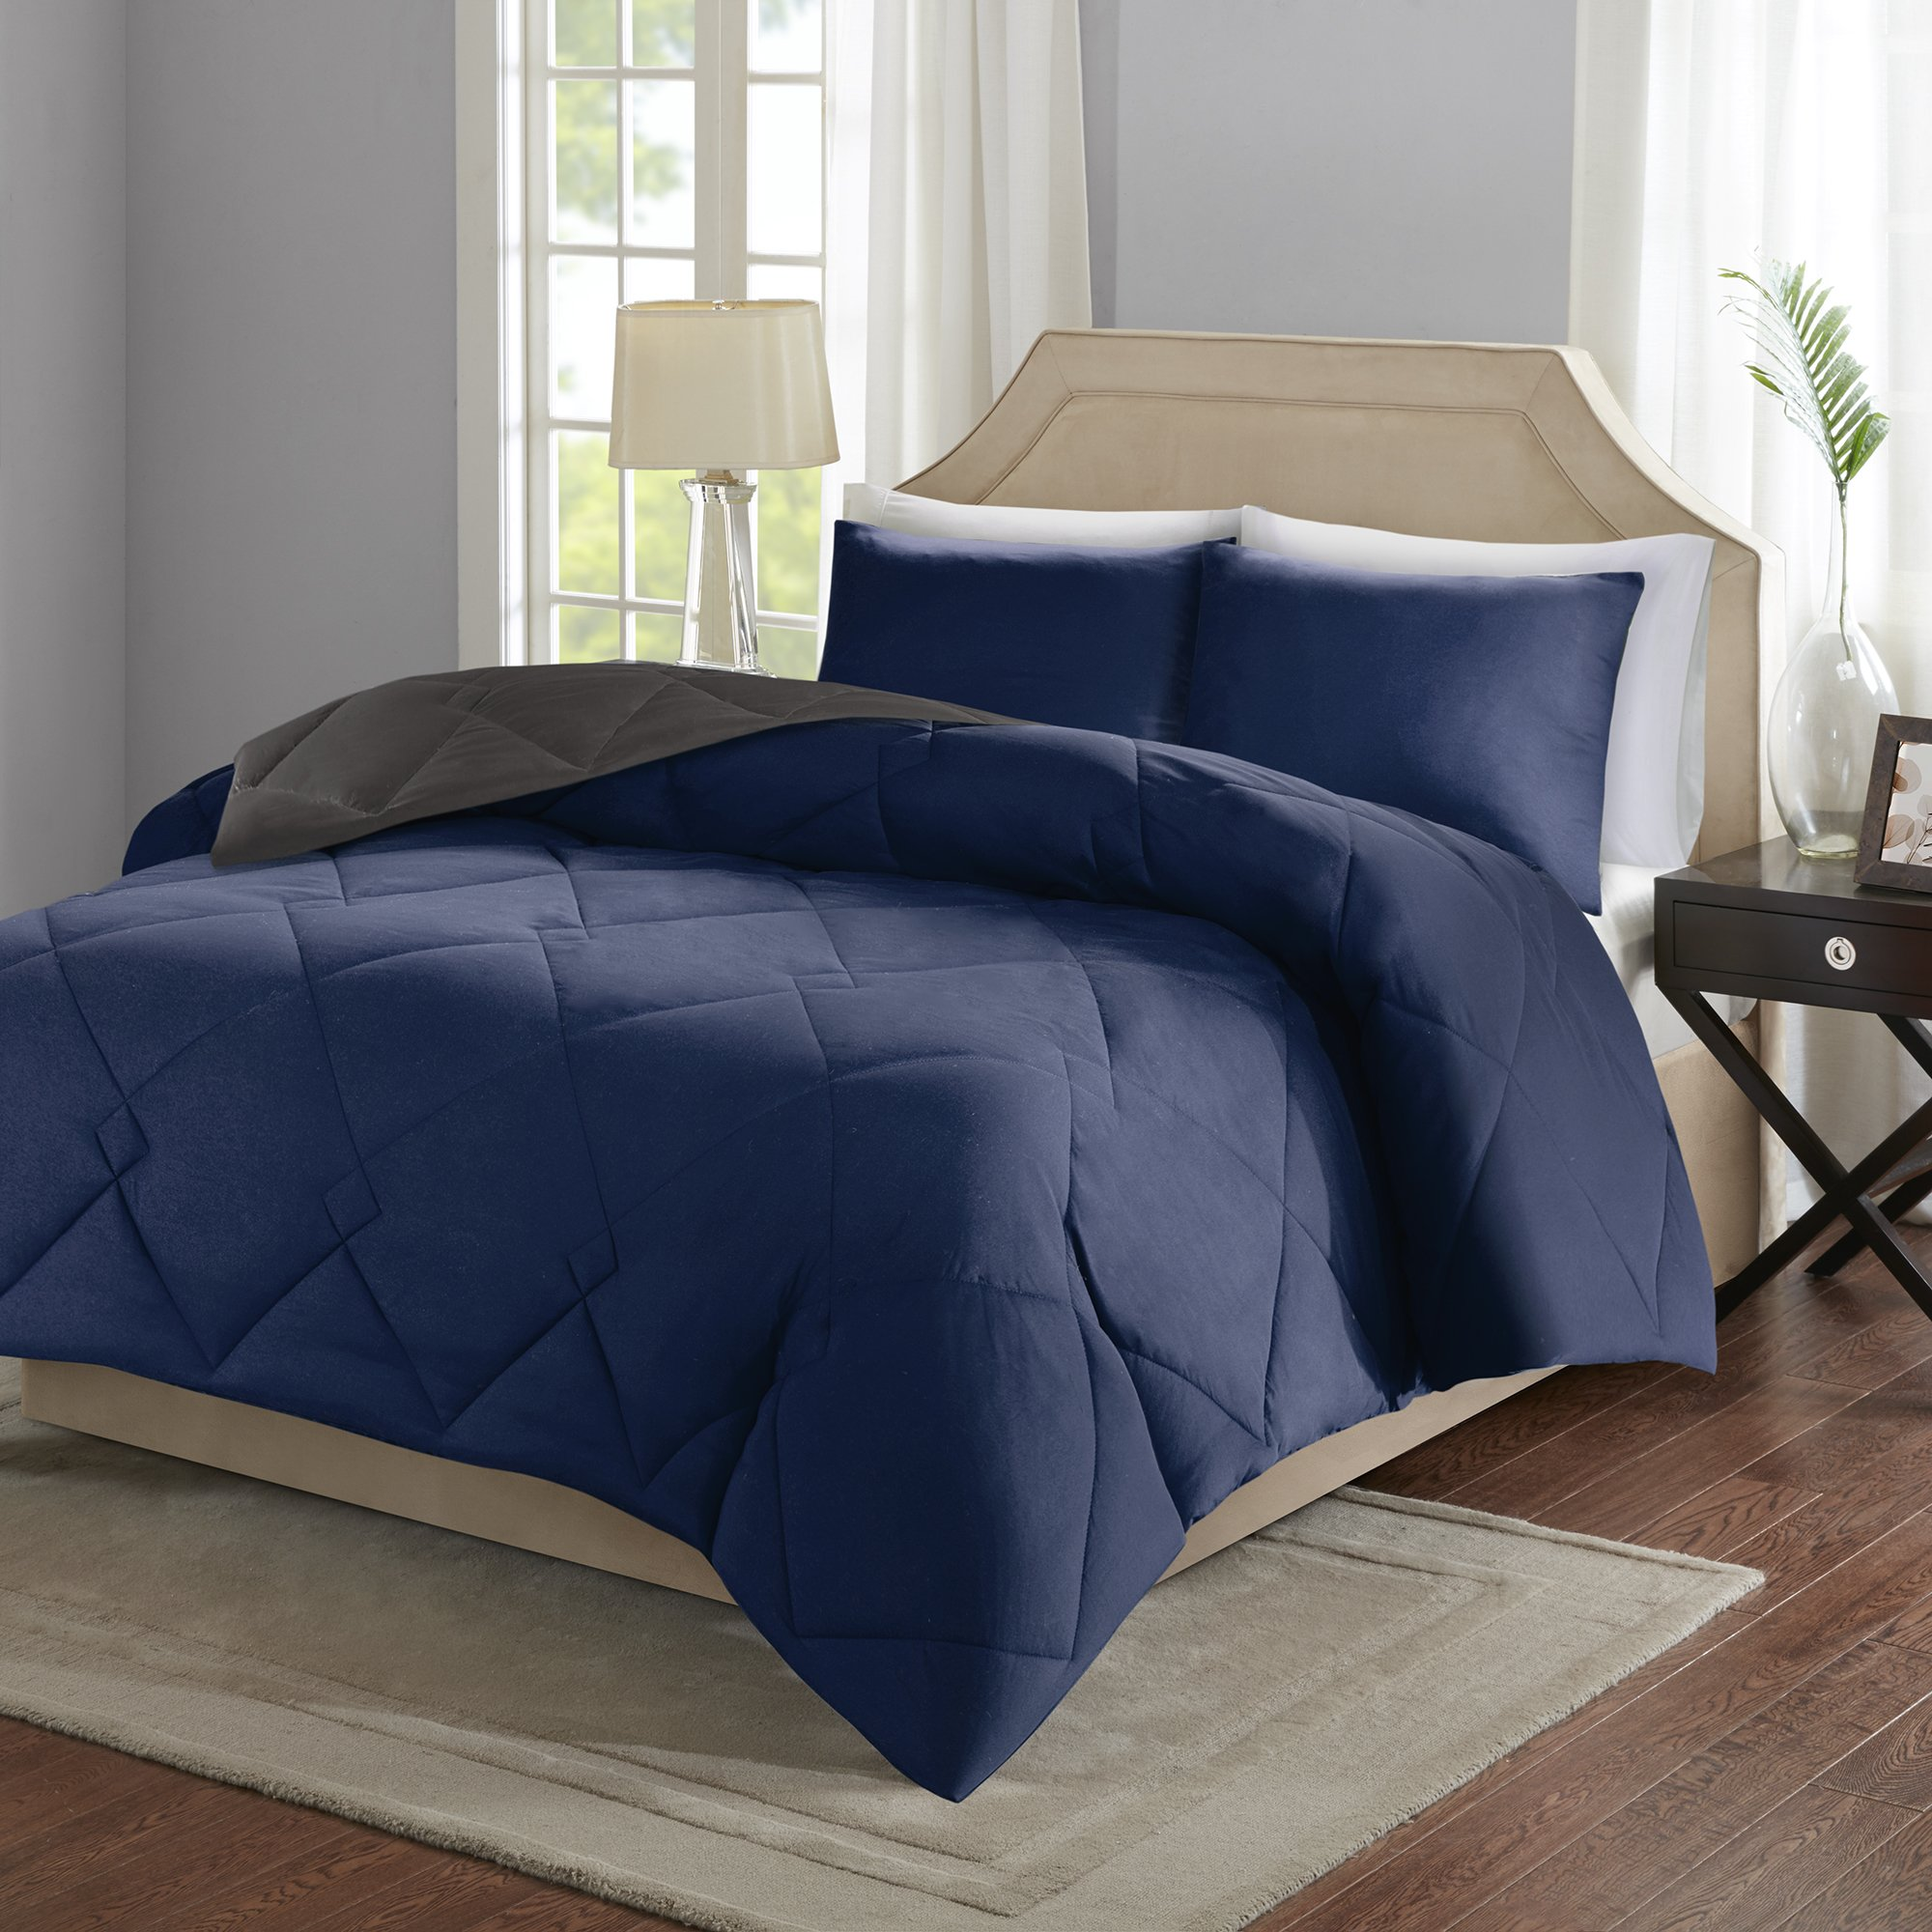 Comfort Spaces – Vixie Reversible Goose Down Alternative Comforter Mini Set - 3 Piece – Navy and Charcoal – Stitched Geometrical Diamond Pattern – Full/Queen size, includes 1 Comforter, 2 Shams